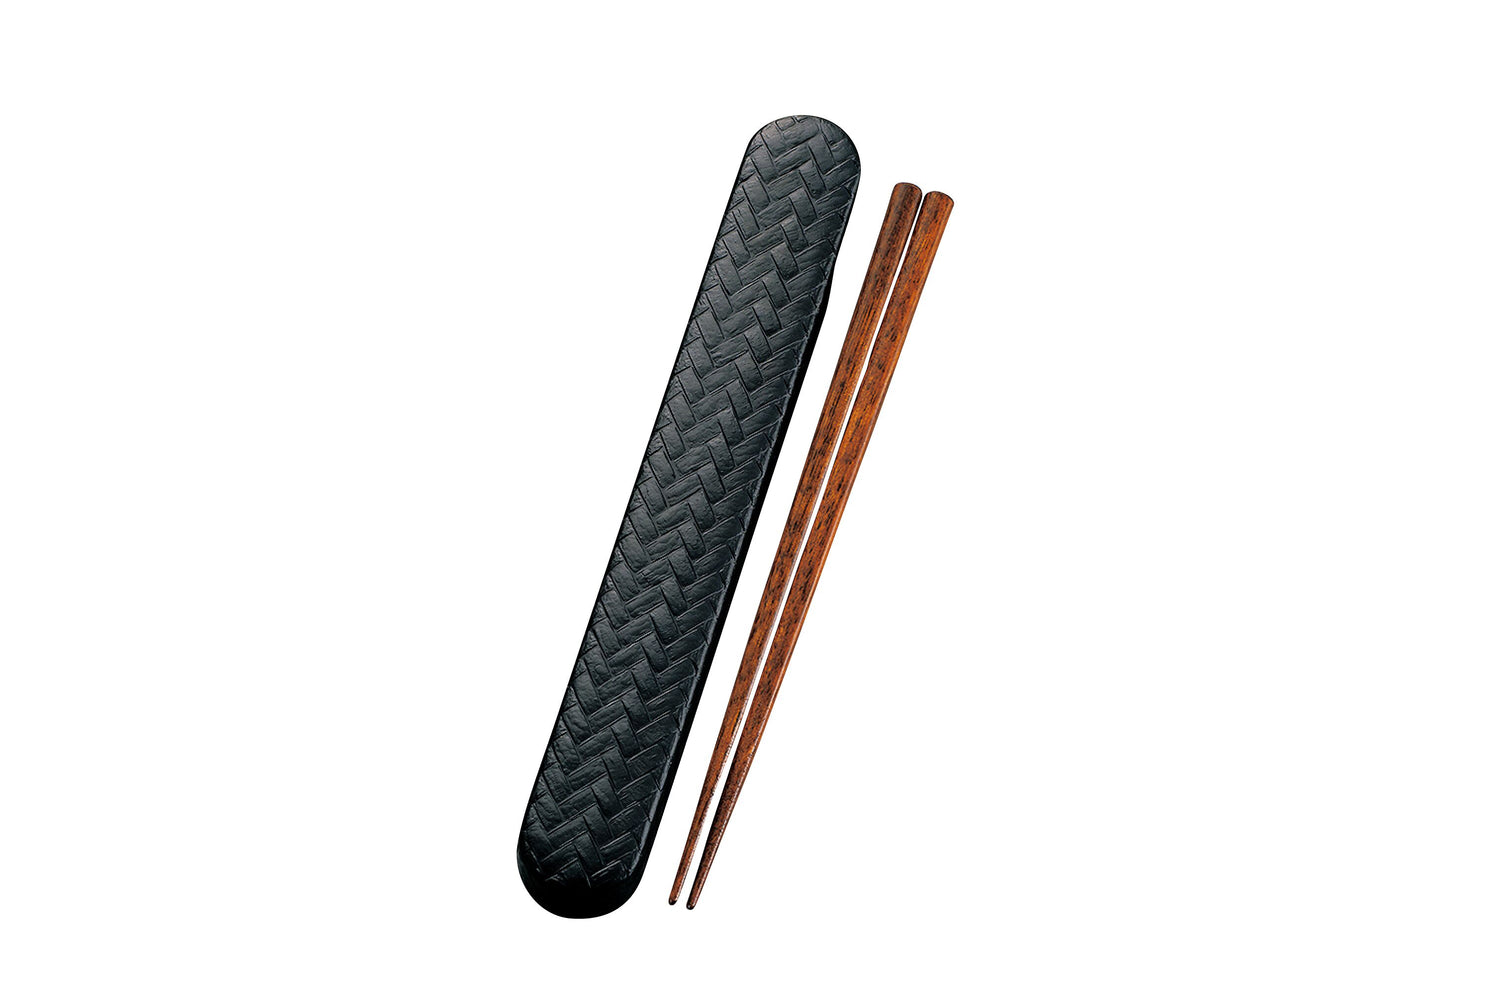 Nuri Ajiro Retro Chopsticks | Black by Hakoya - Bento&co Japanese Bento Lunch Boxes and Kitchenware Specialists